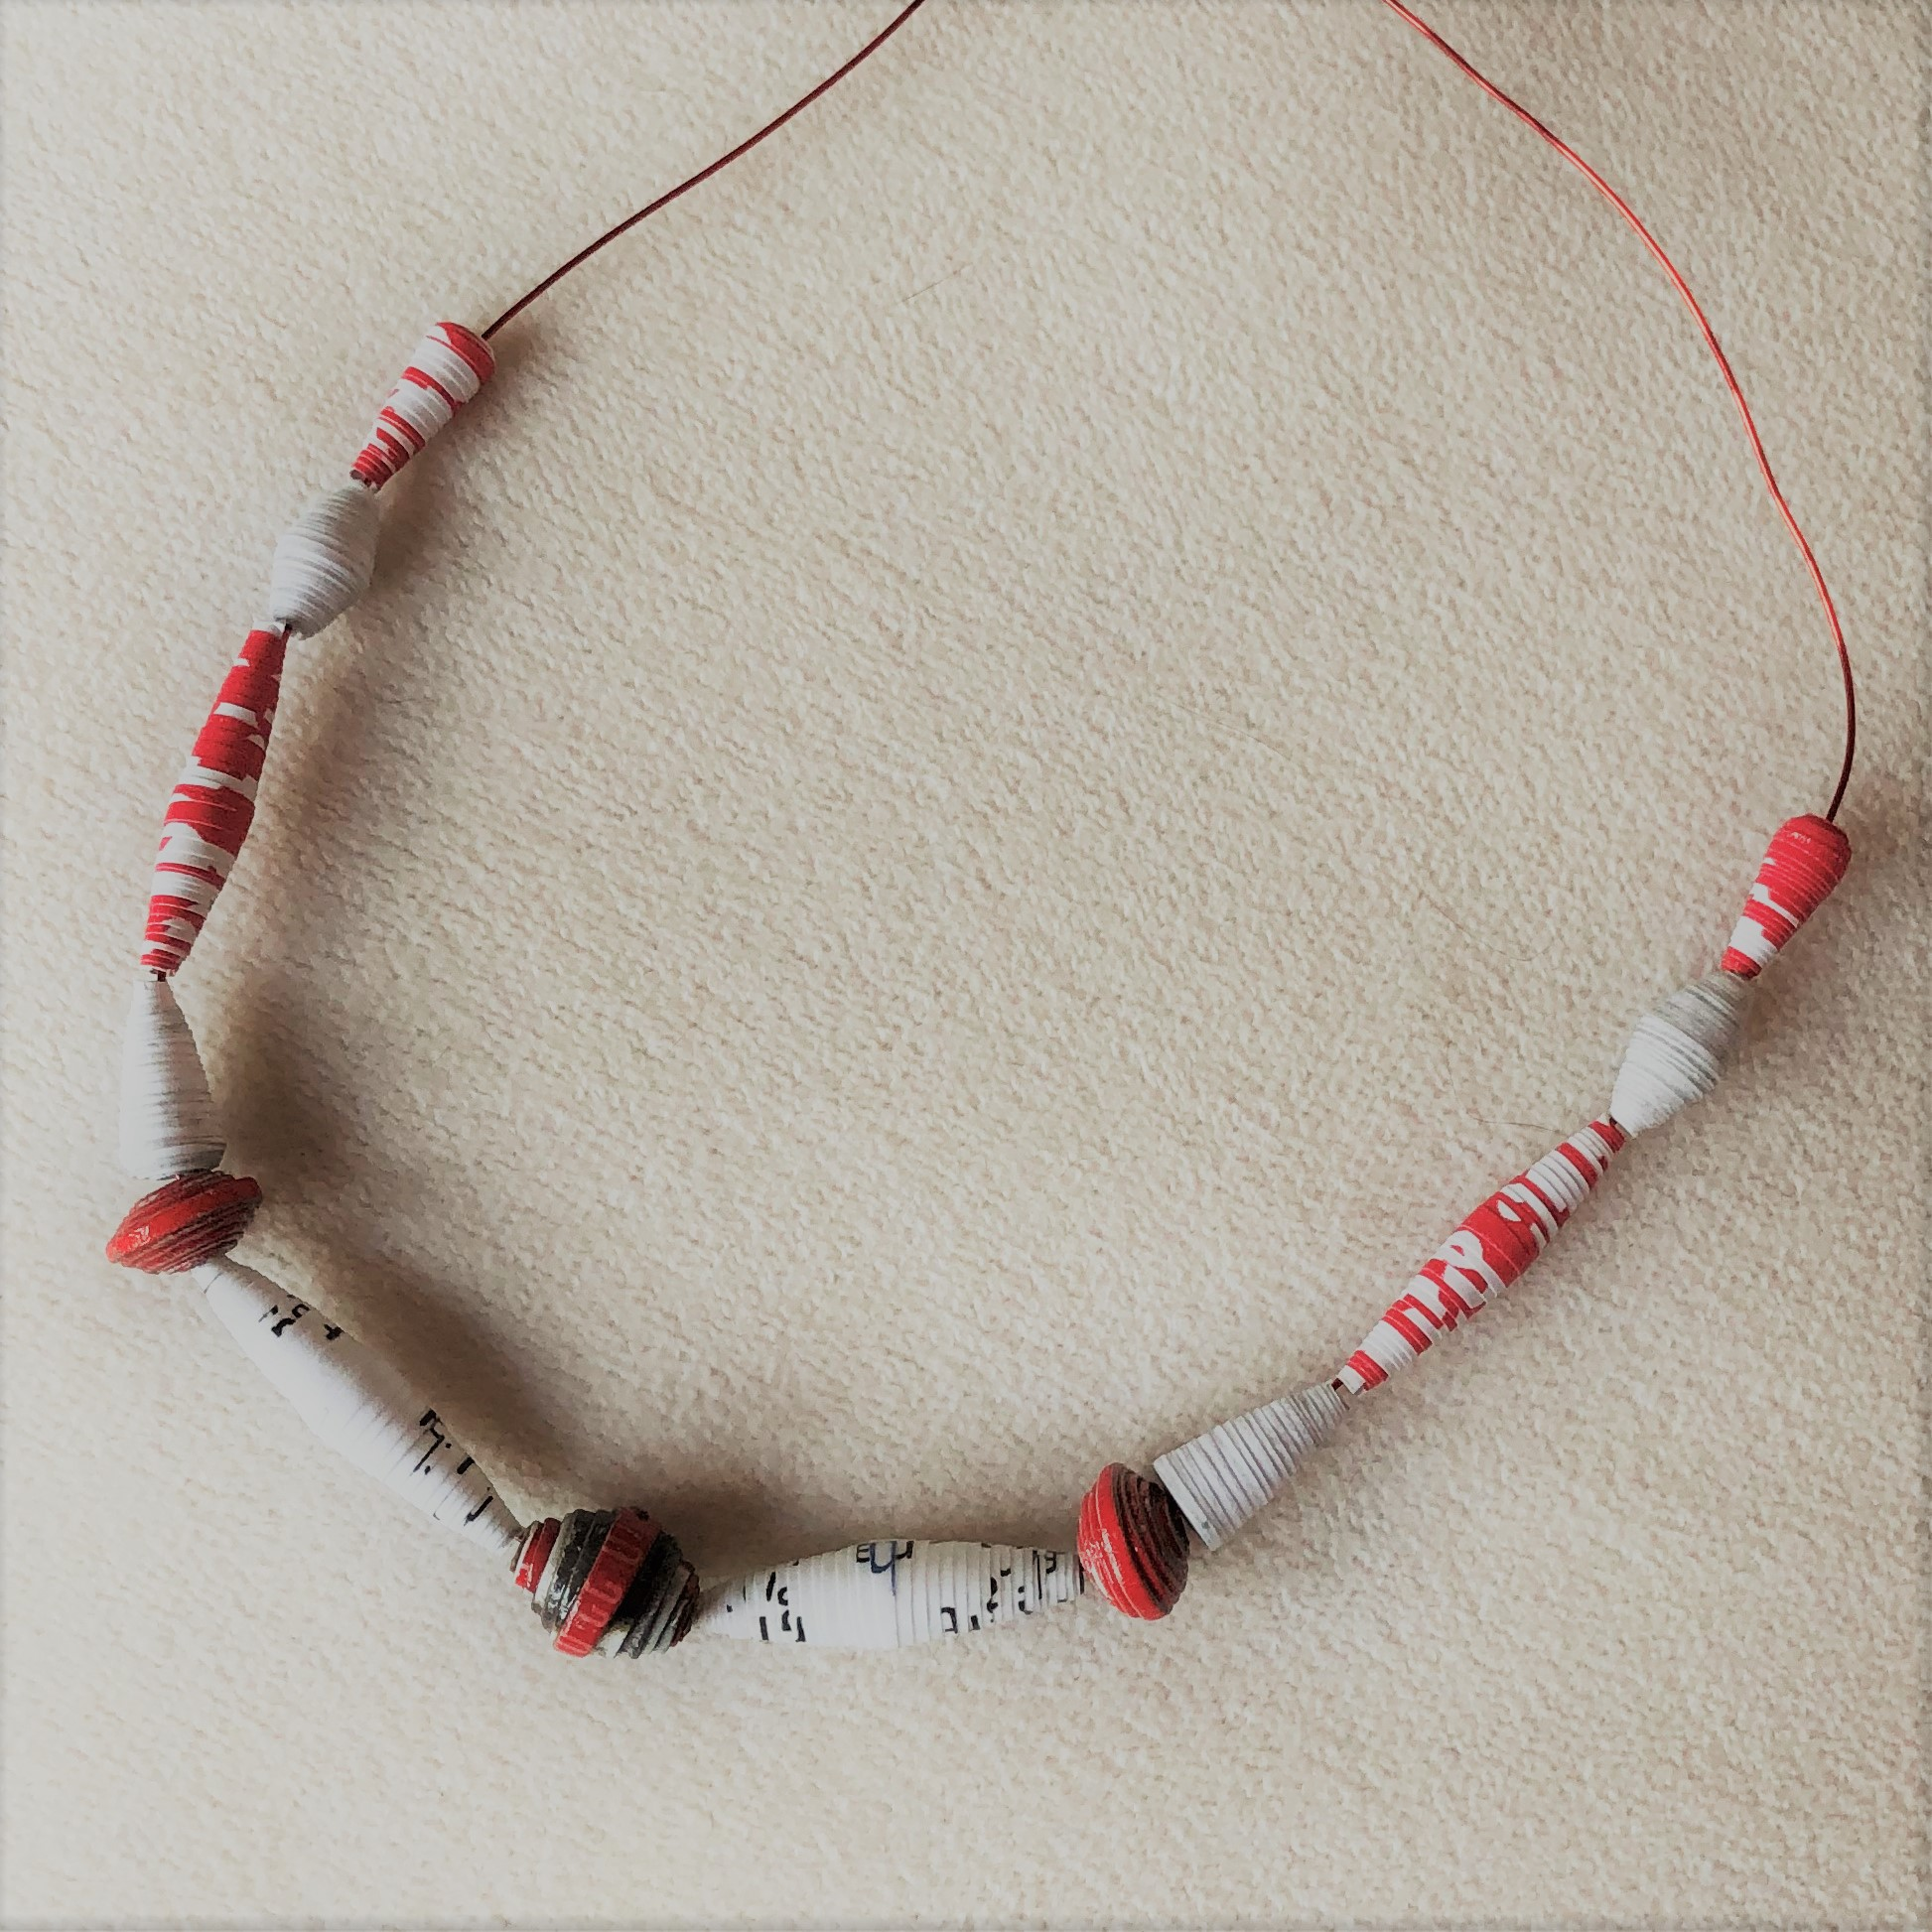 Crafting from Home: Paper Beads - Online